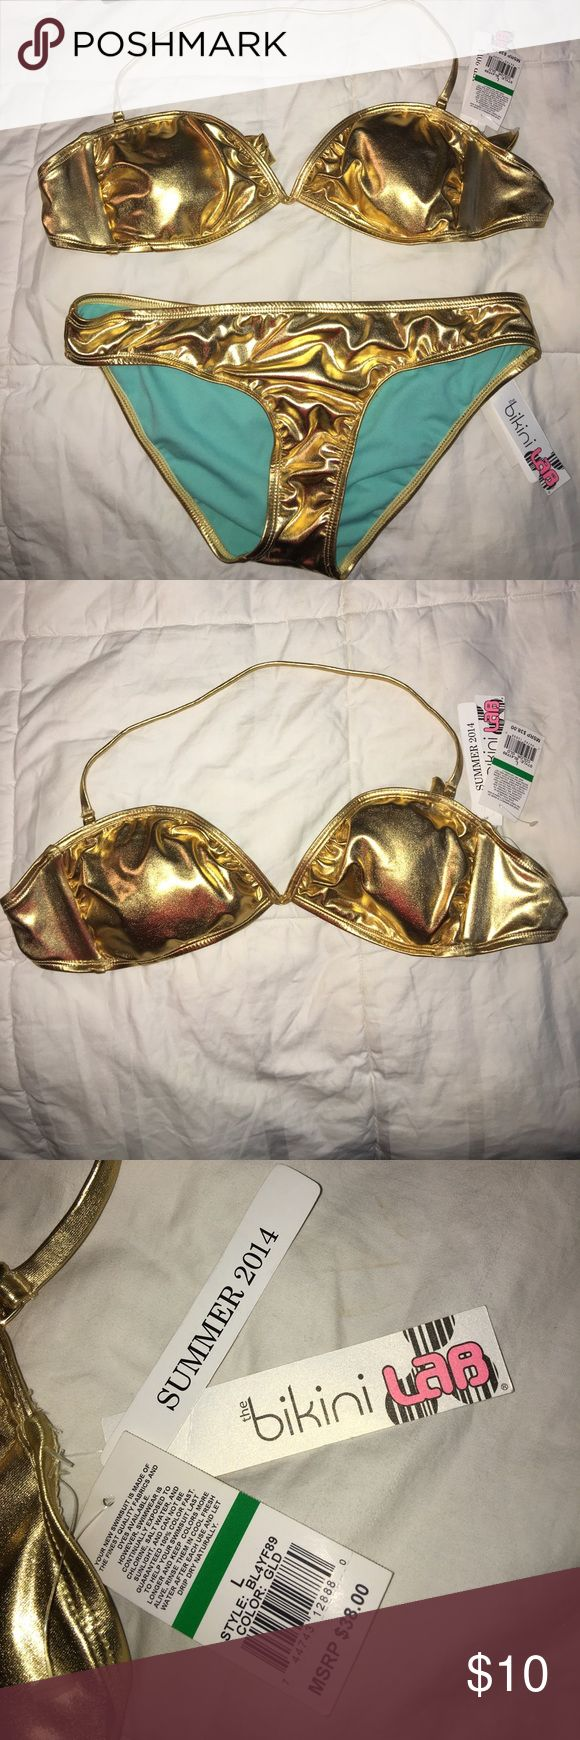 Brand new Gold bikini top and bottom set! Brand new with tags still attached. Never been worn gold bikini. Top is a halter string tie. Purchase includes both top and bottom! Swim Bikinis